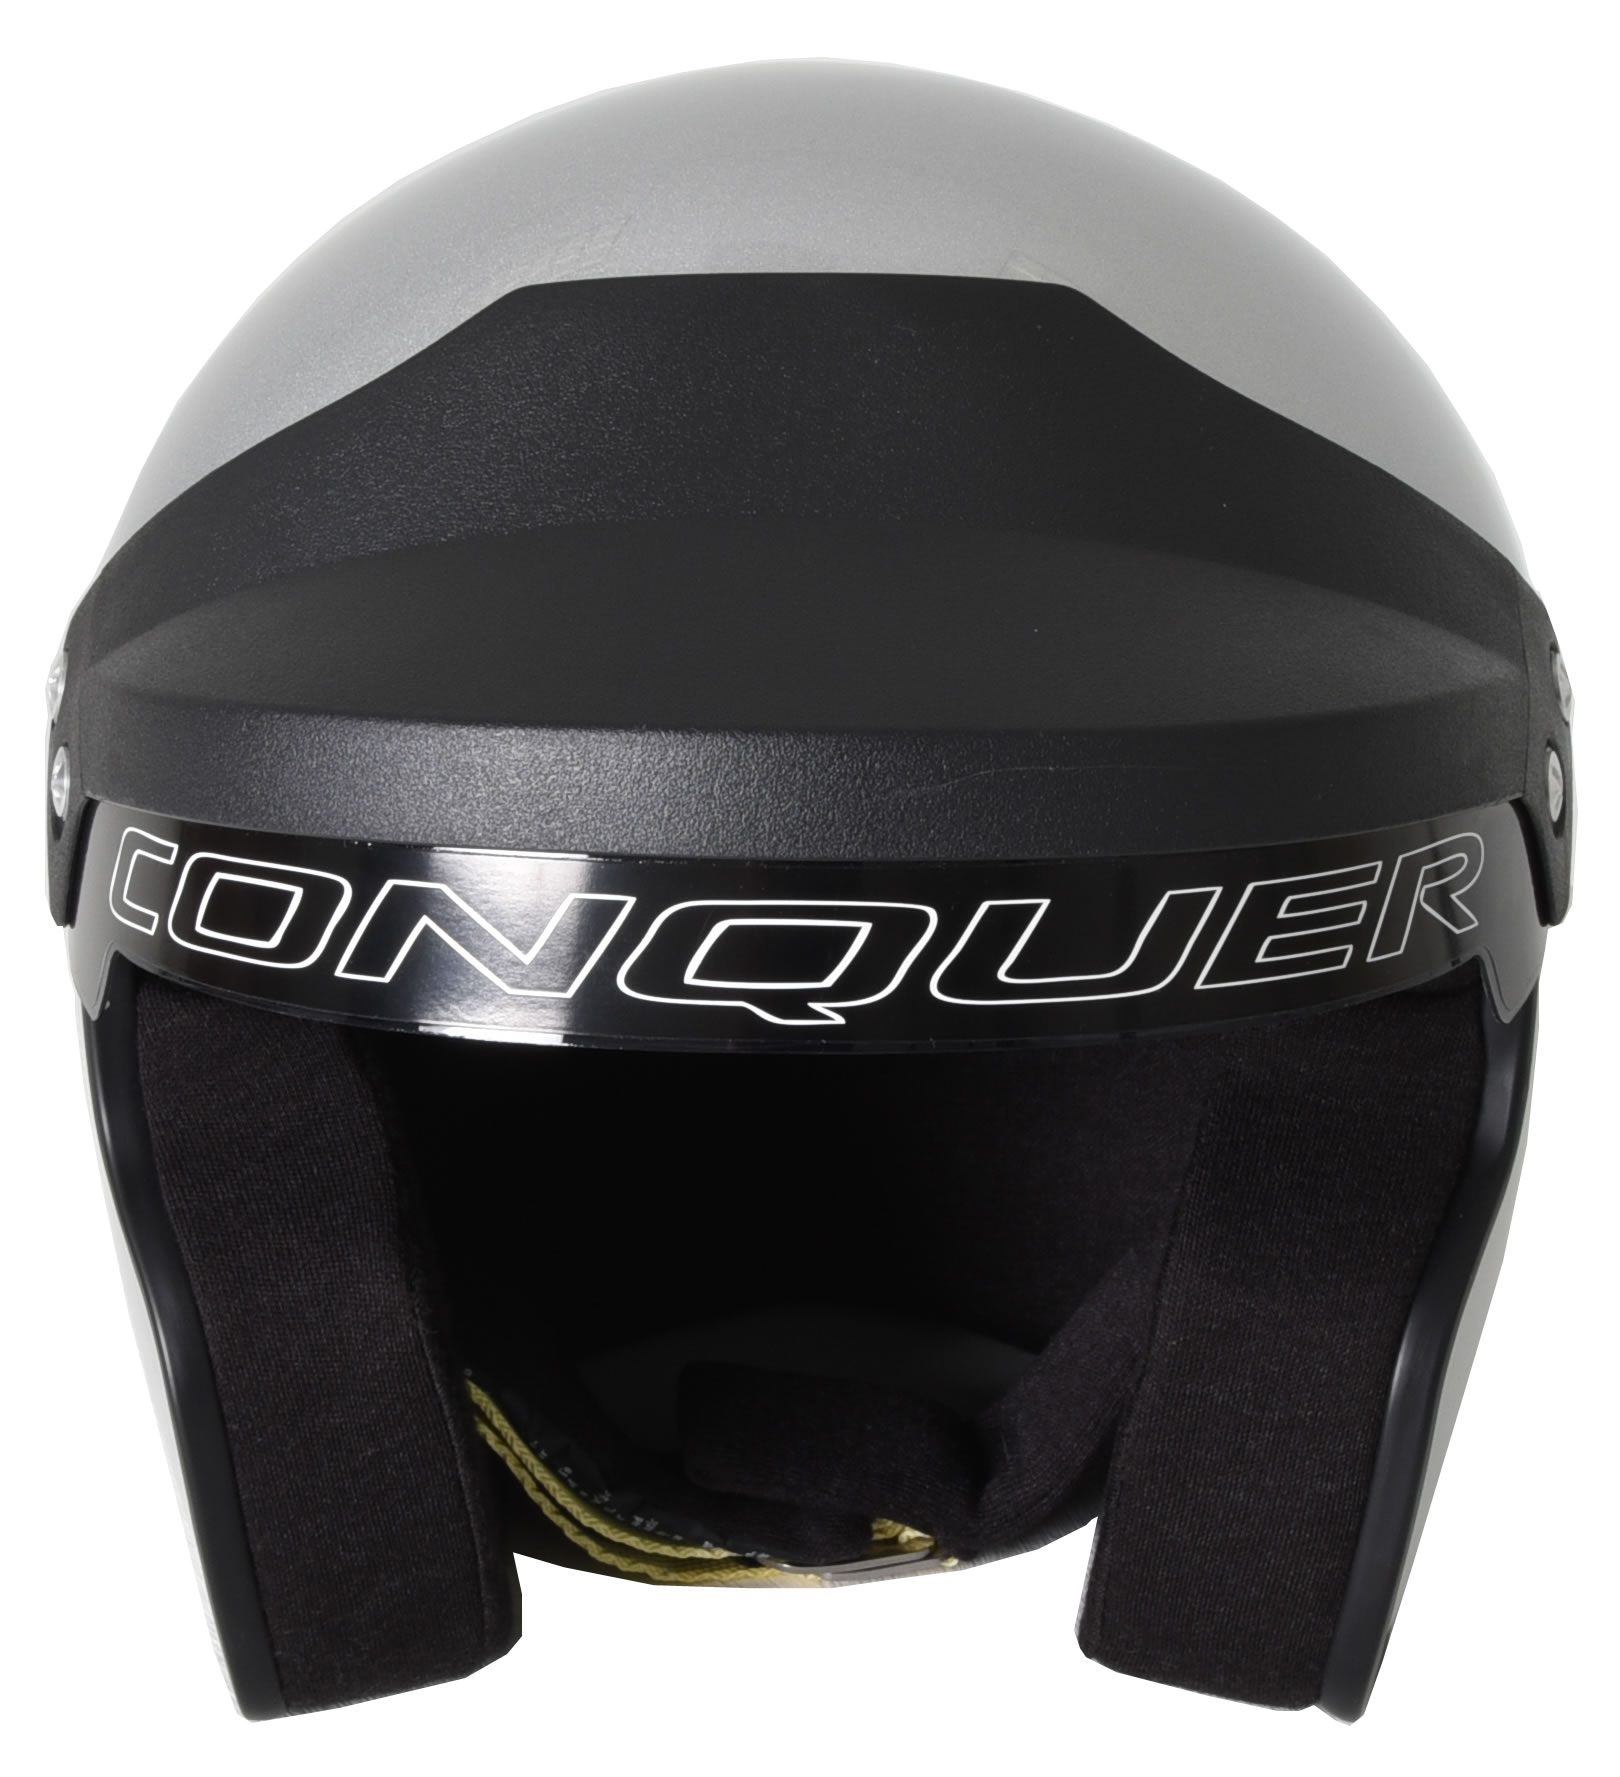 Conquer-Snell-SA2015-Approved-Open-Face-Racing-Helmet thumbnail 24